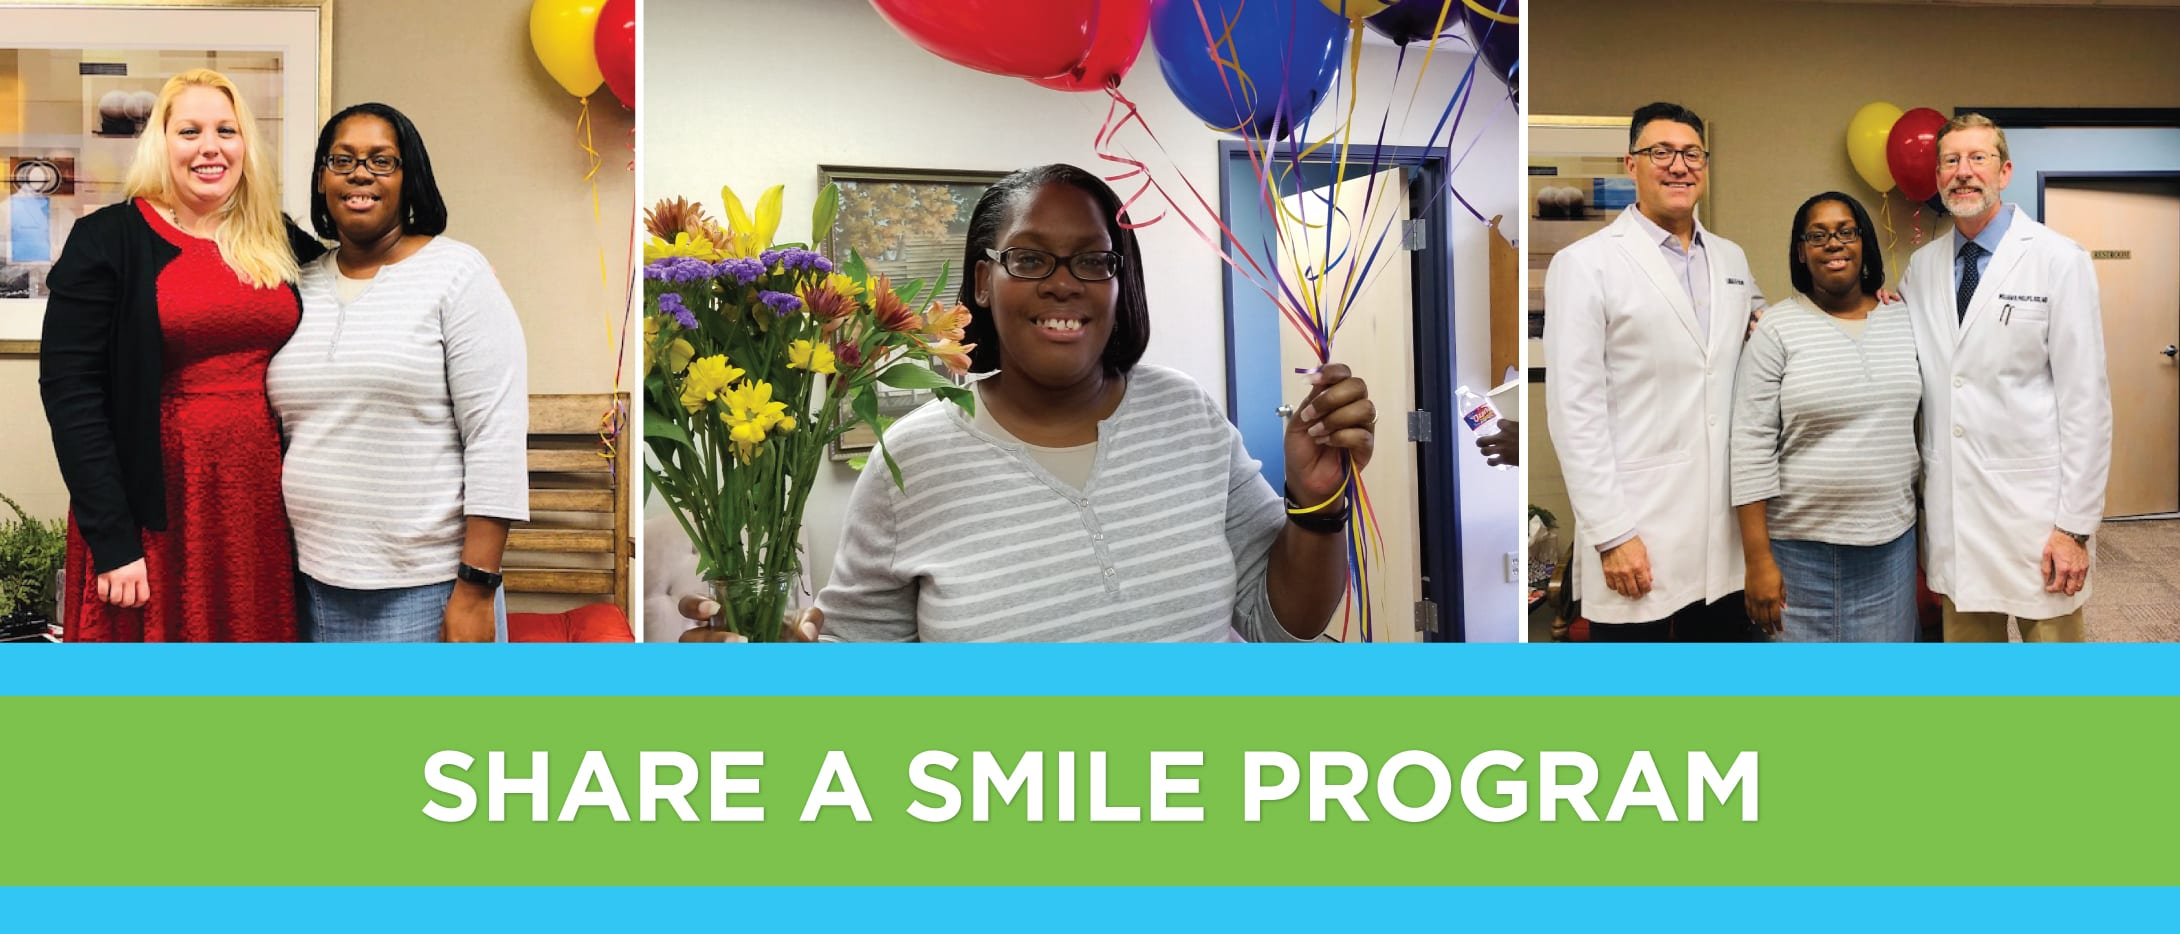 Meet Danyell S., Our Share A Smile Recipient!